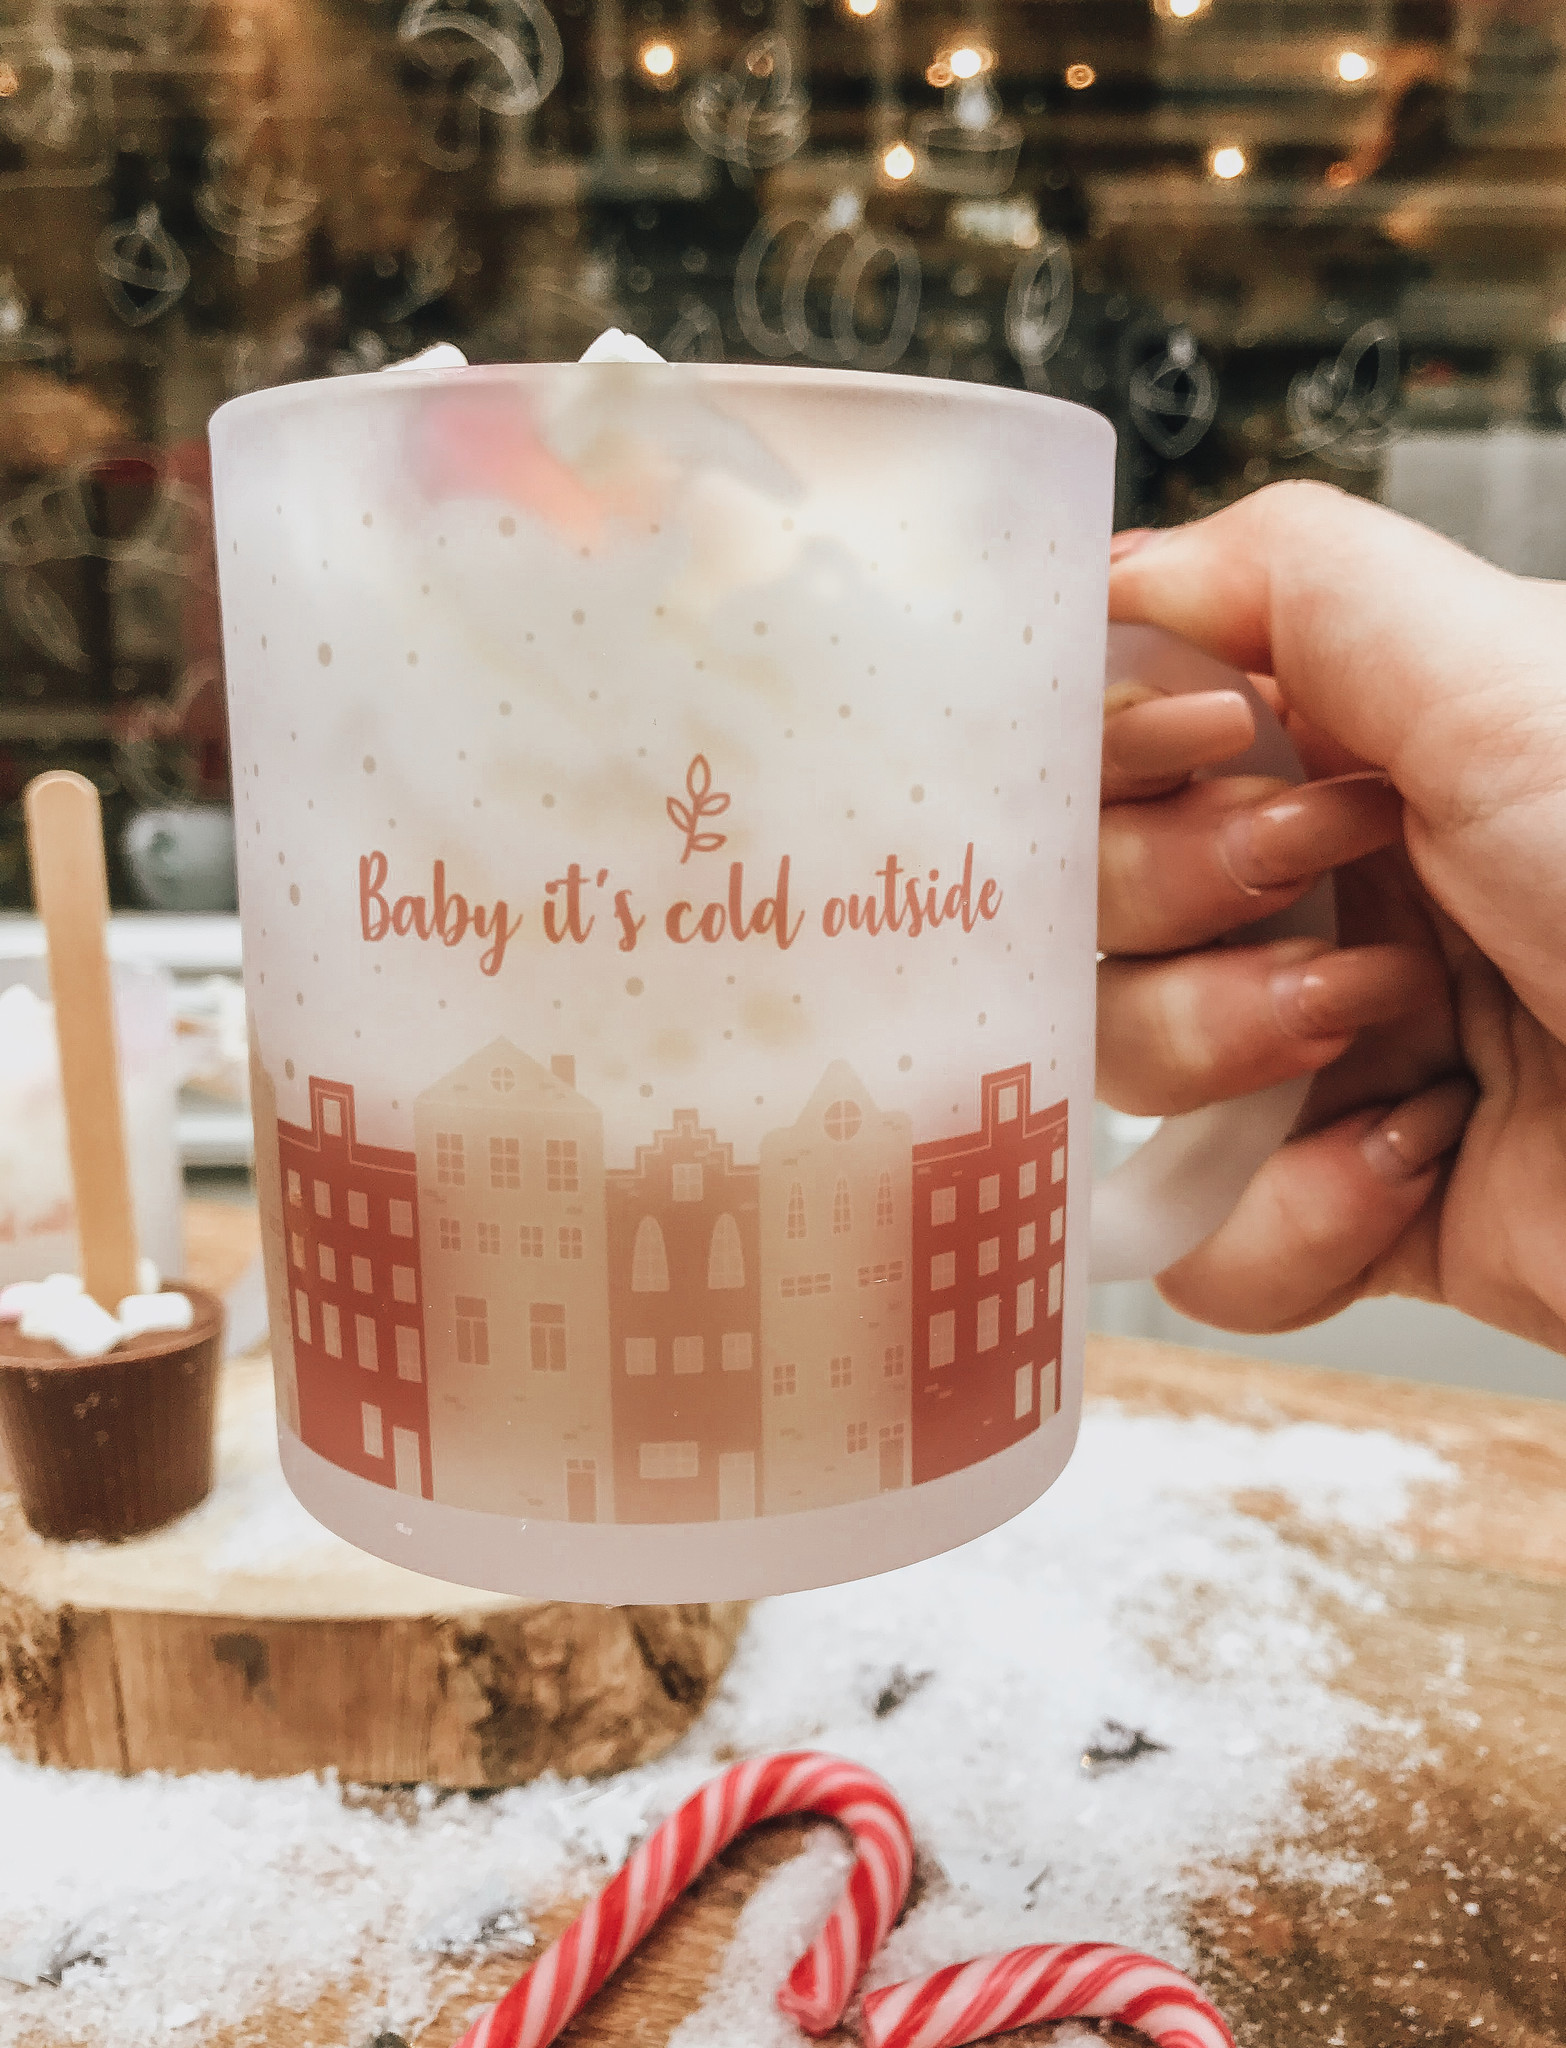 BABY IT'S COLD OUTSIDE | AMSTERDAM MUG